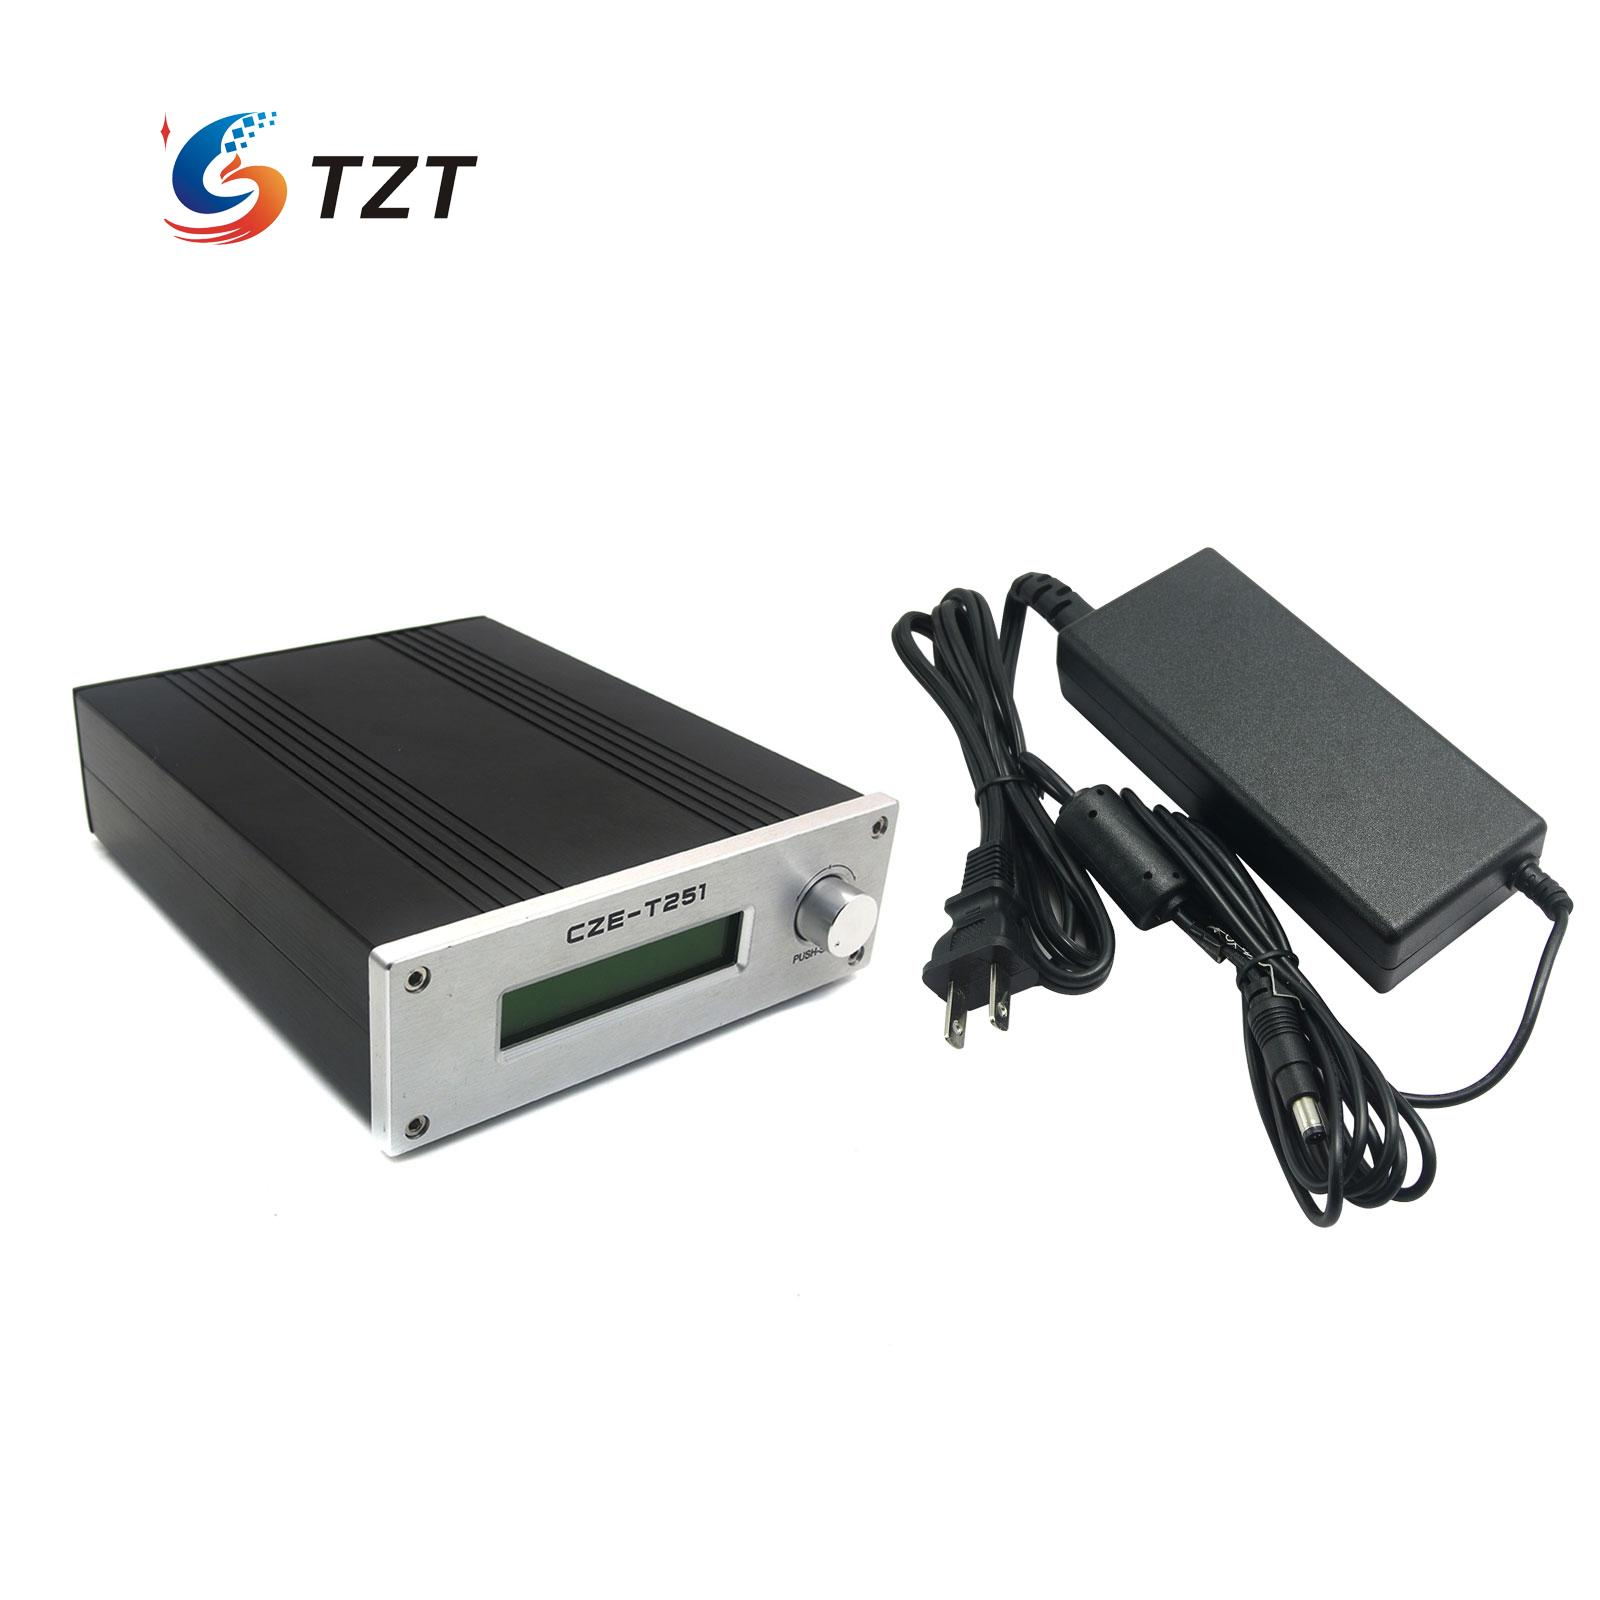 0-25W FM Transmitter CZE-T251 Adjustable 87-108MHz Mono Stereo PLL Broadcast Station with Power Supply 100w 150w 2u professional fm broadcast radio transmitter fm transmisor 87 108 mhz dipole antenna